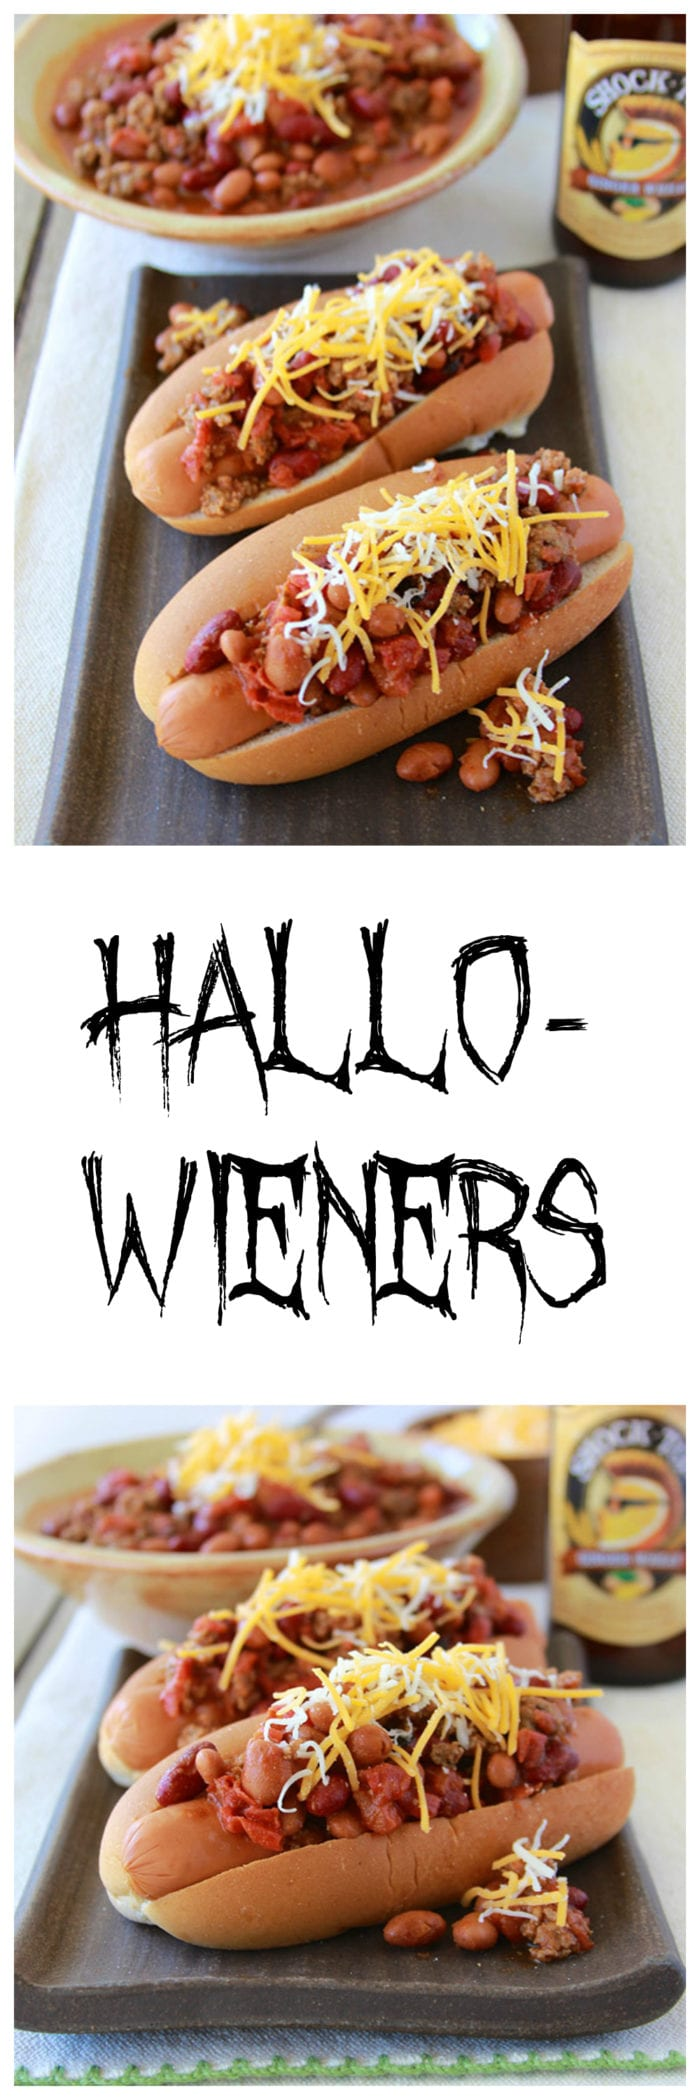 Hallo-weiners are a fun way to fuel your family before they head out to trick-or-treat on Halloween Night!  www.cookingwithruthie.com